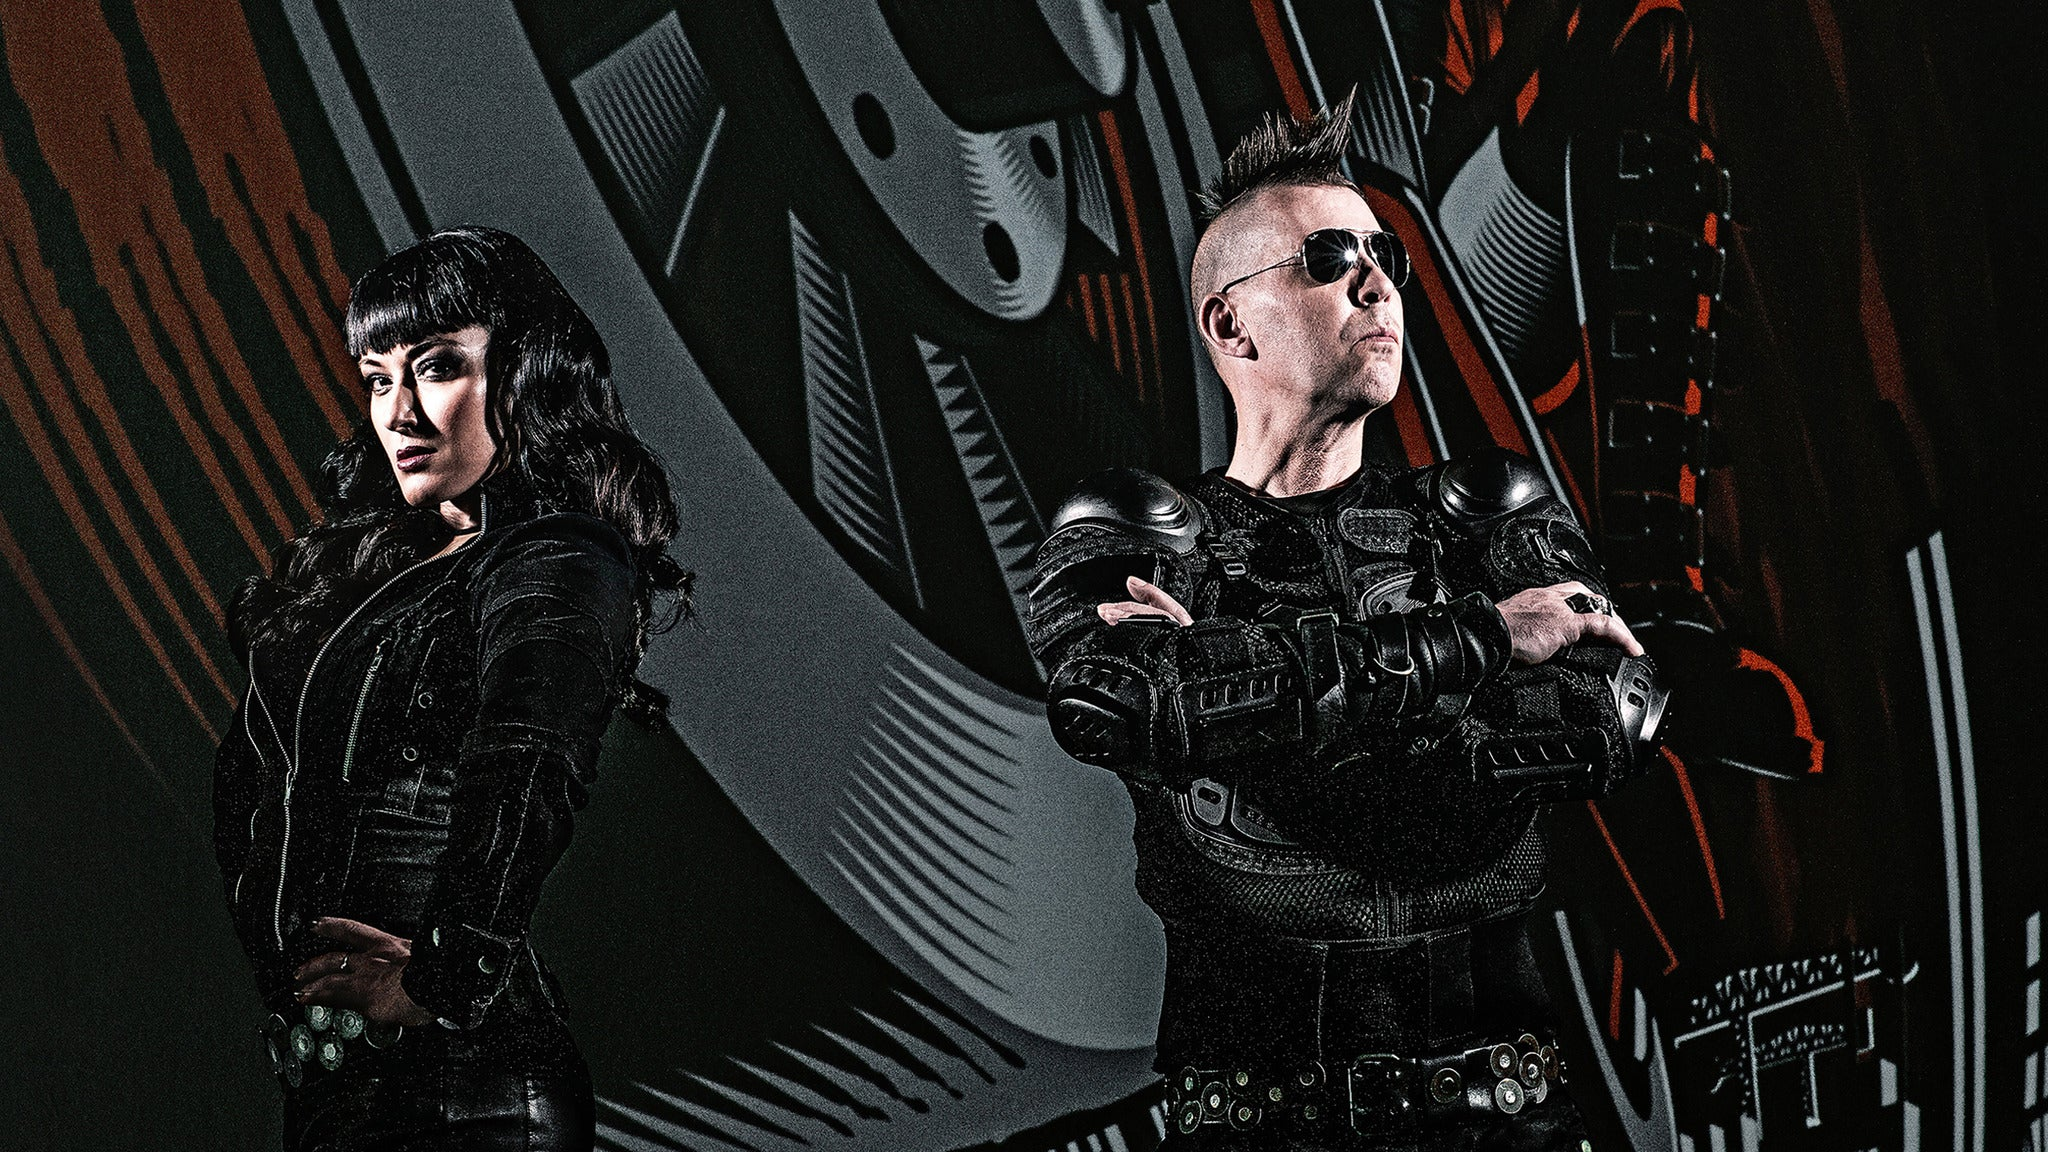 KMFDM 2017 Hell Yeah Tour with OHGR & Lord of the Lost